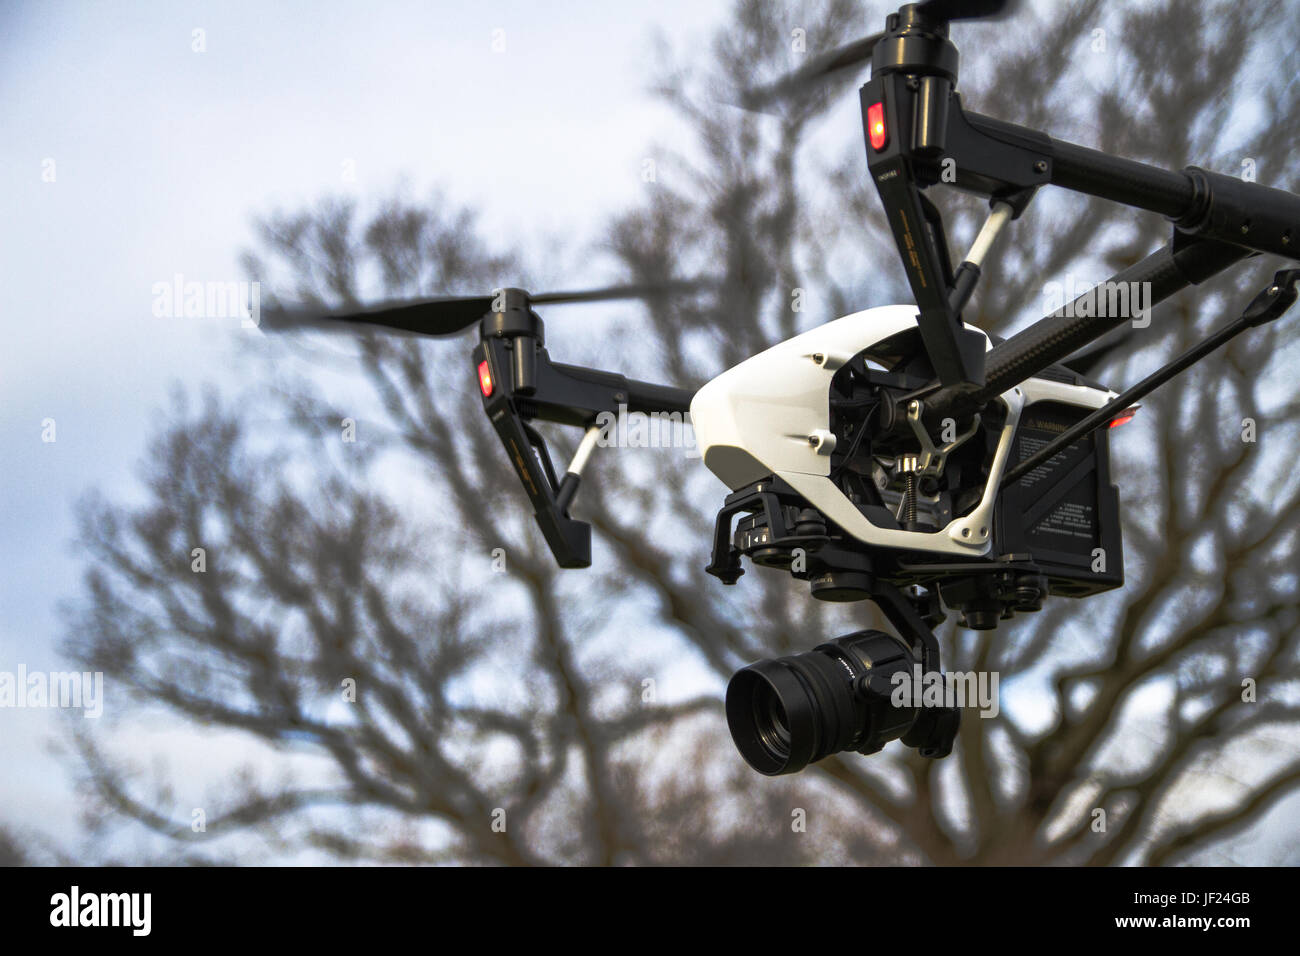 A DJI Inspire 1 Pro with a Zenmuse X5 Camera payload in flight. - Stock Image